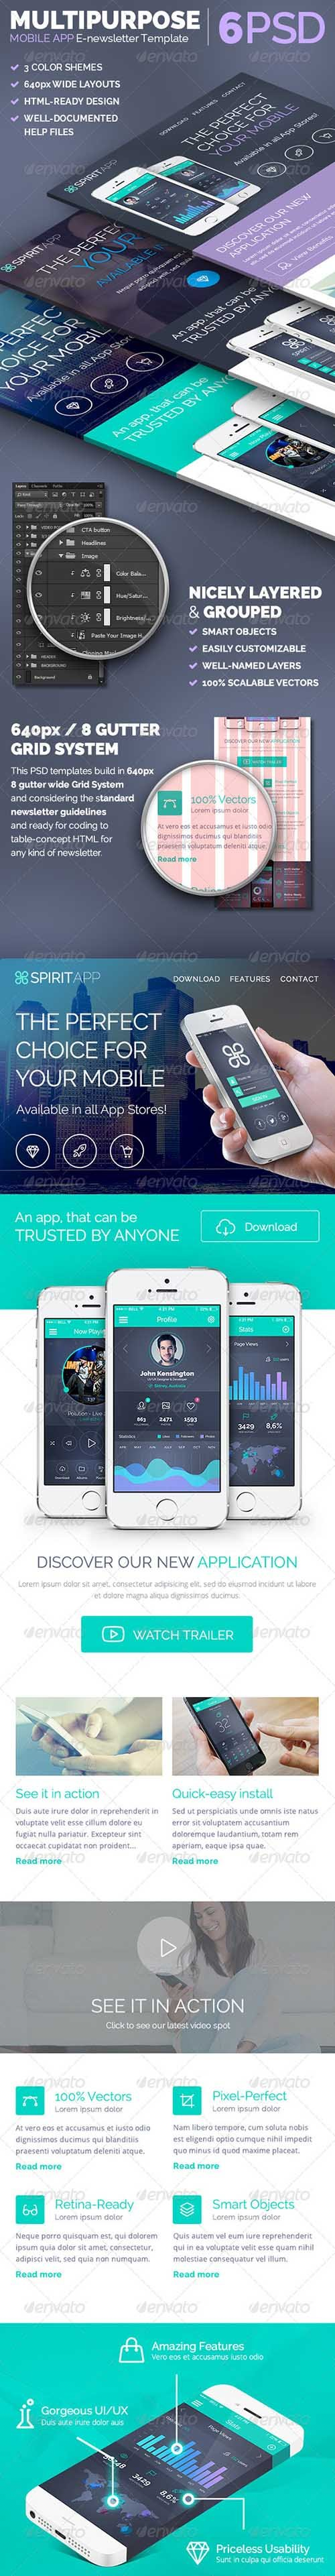 GraphicRiver - SpiritApp - Multipurpose E-newsletter Template - 7849208